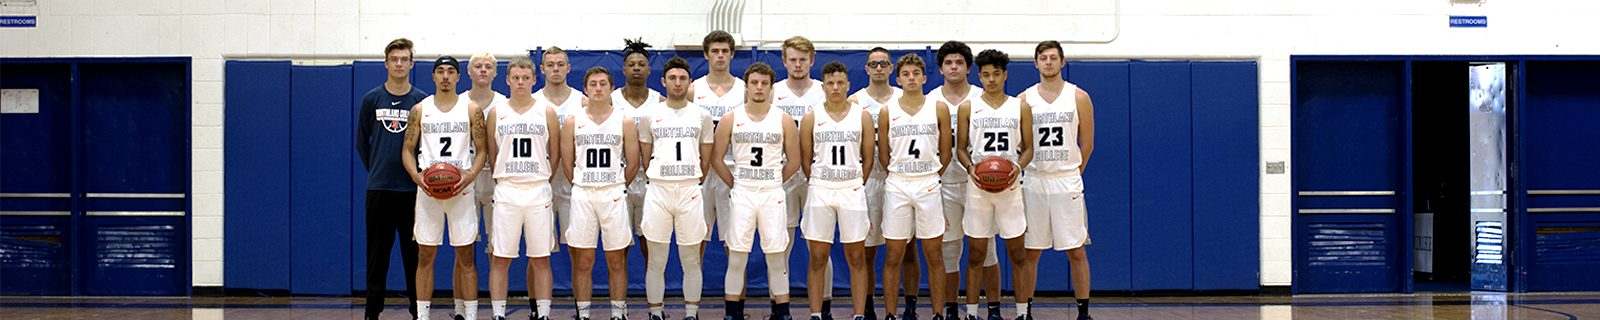 Men's Basketball Team Photo 2018